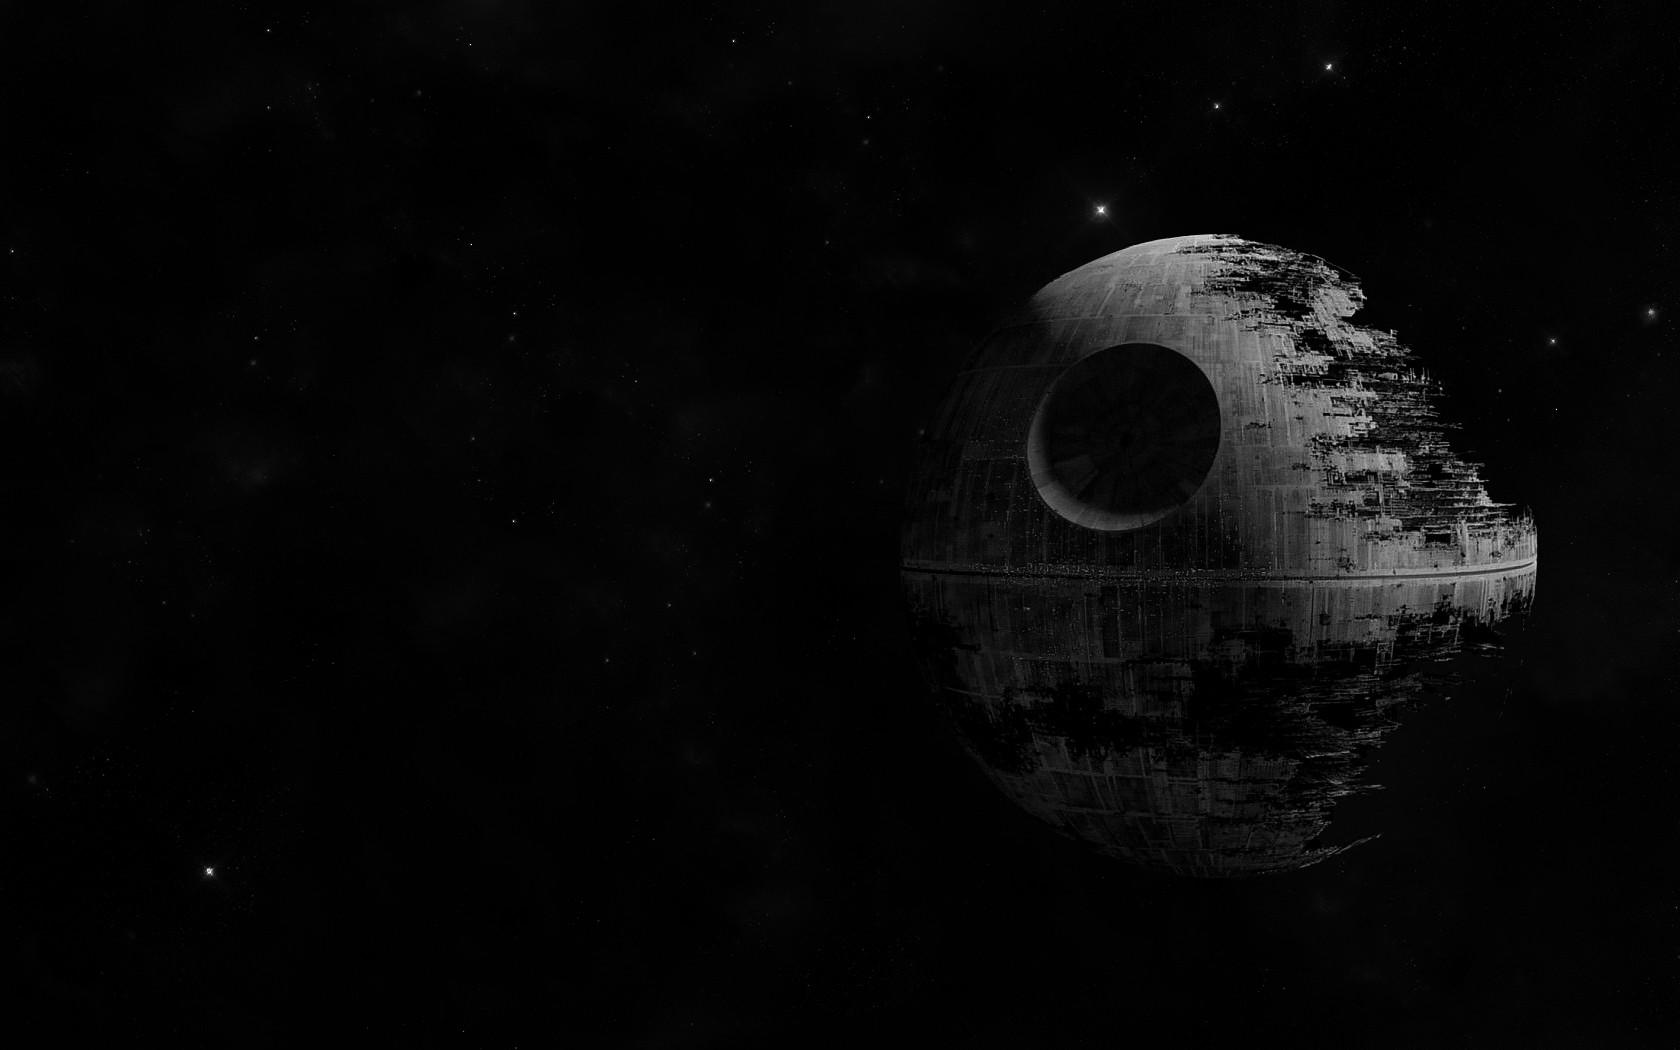 Best Star Wars Wallpapers: 30 Image To Help You Pick A Side